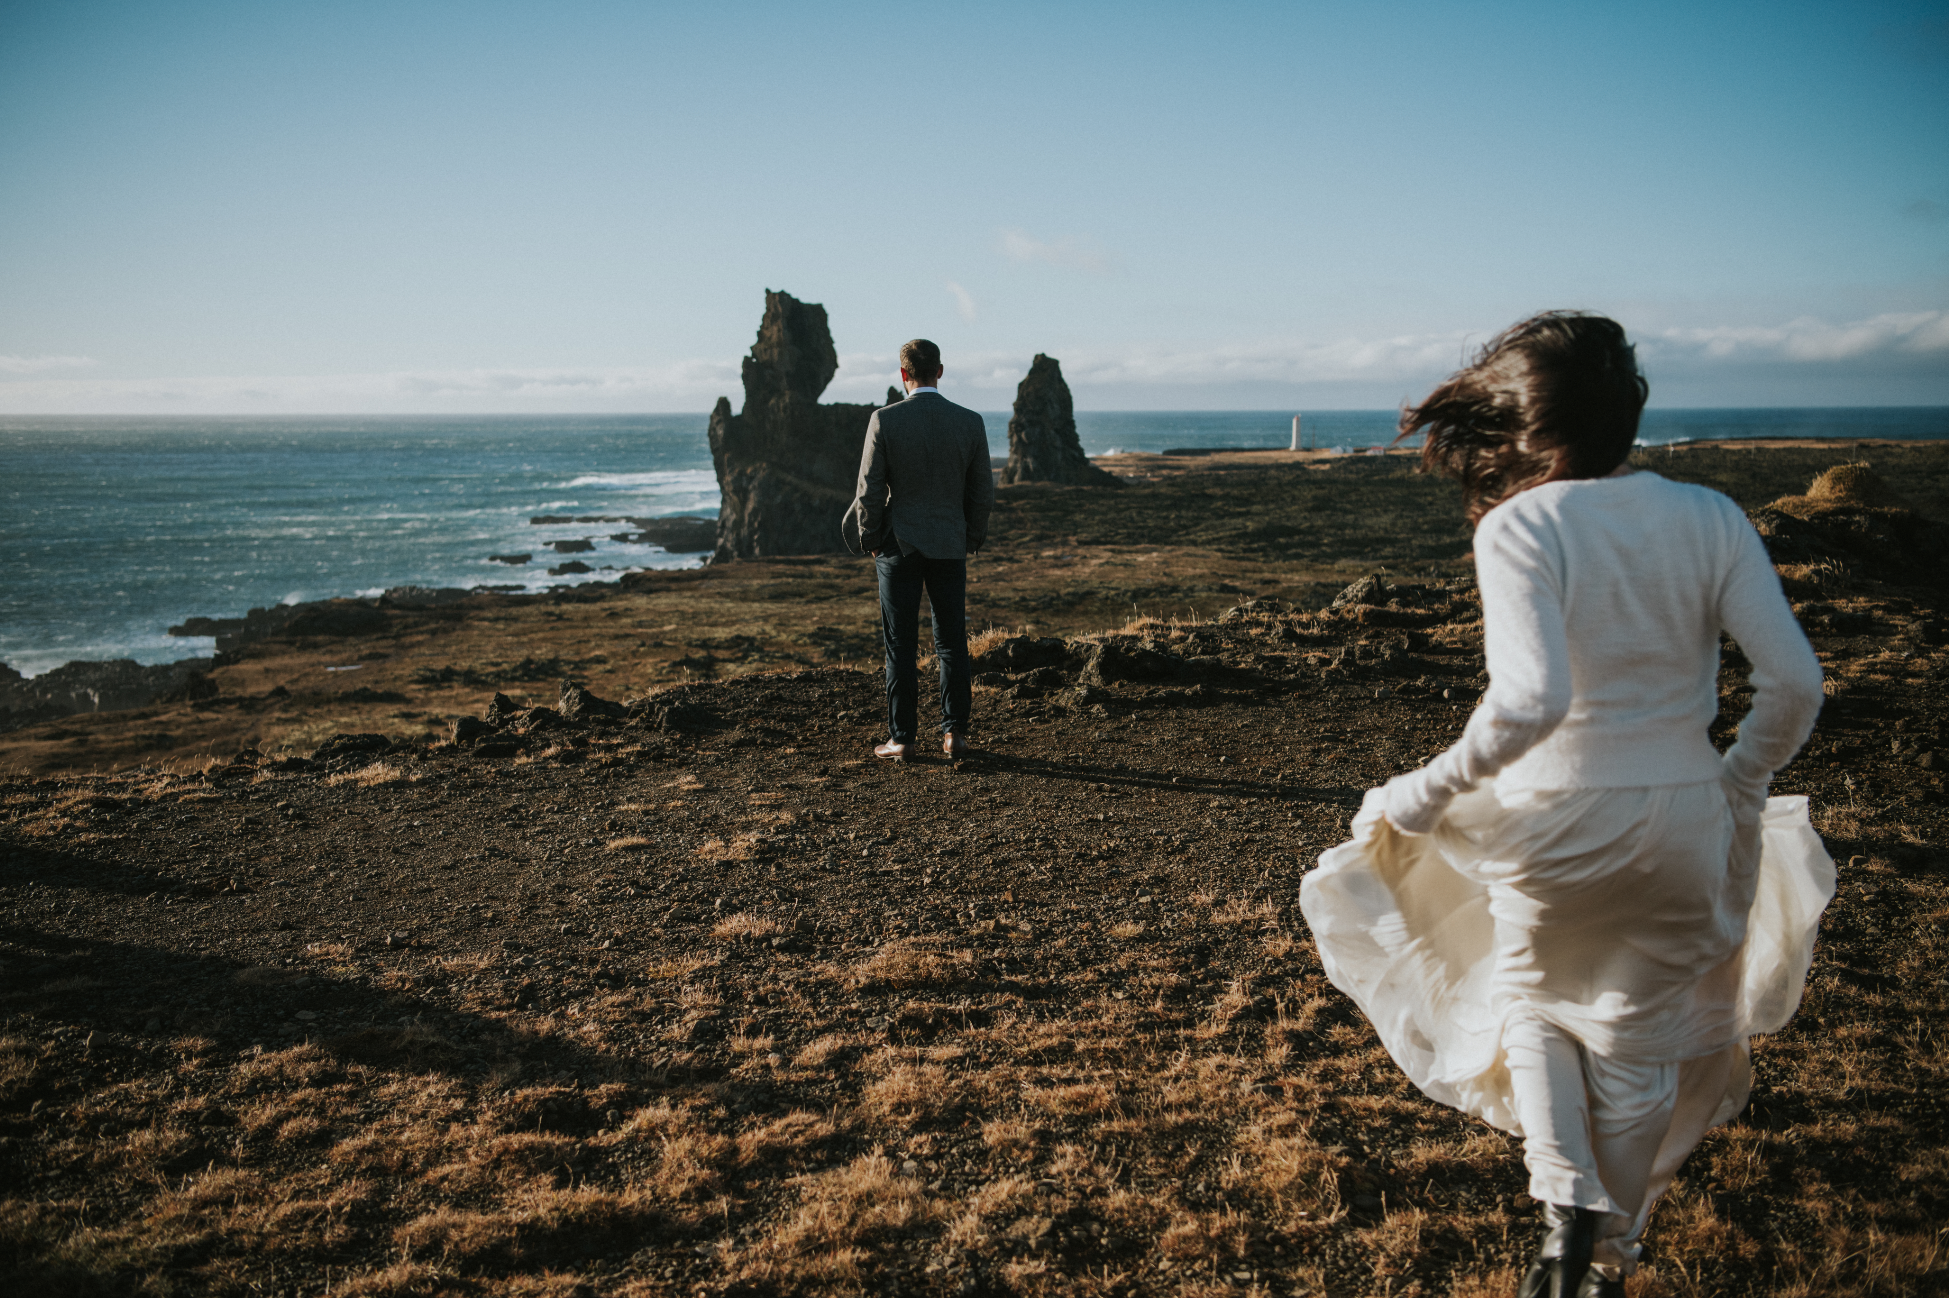 Natalie-Vitaly-Iceland-Elopement-Photographer-Videographer-24